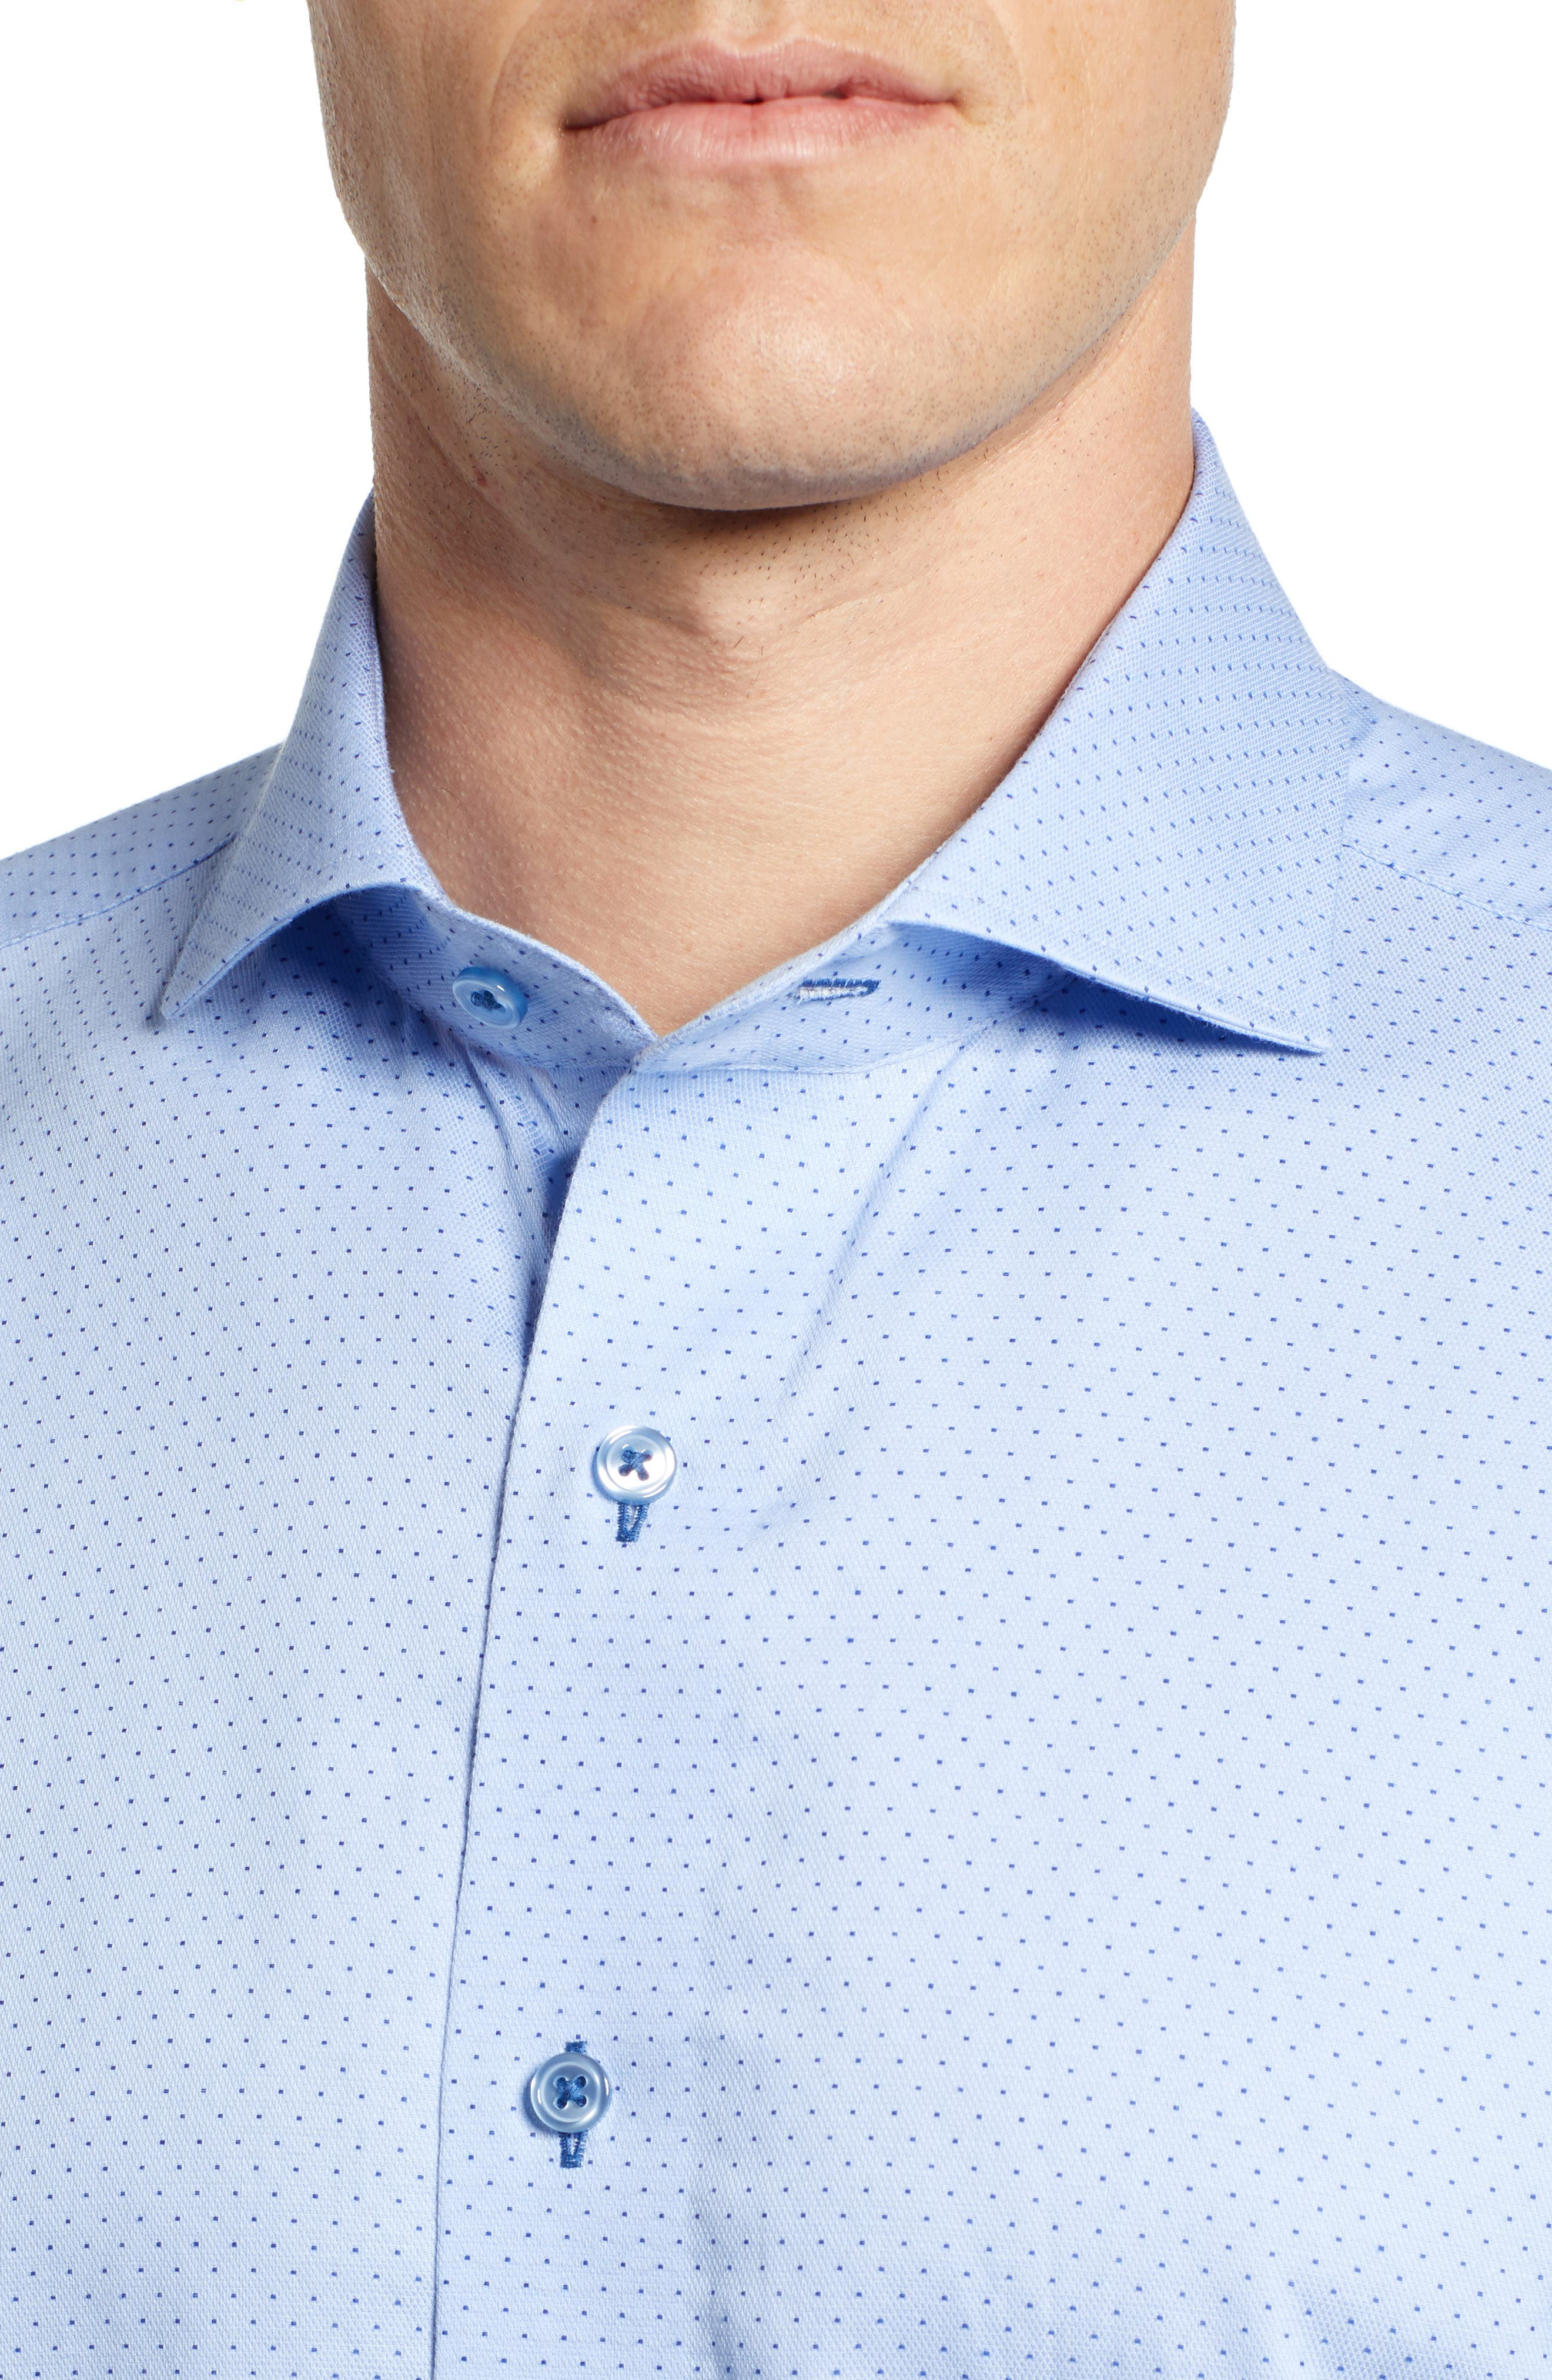 LORENZO UOMO,                             Trim Fit Dot Dress Shirt,                             Alternate thumbnail 2, color,                             LT BLUE